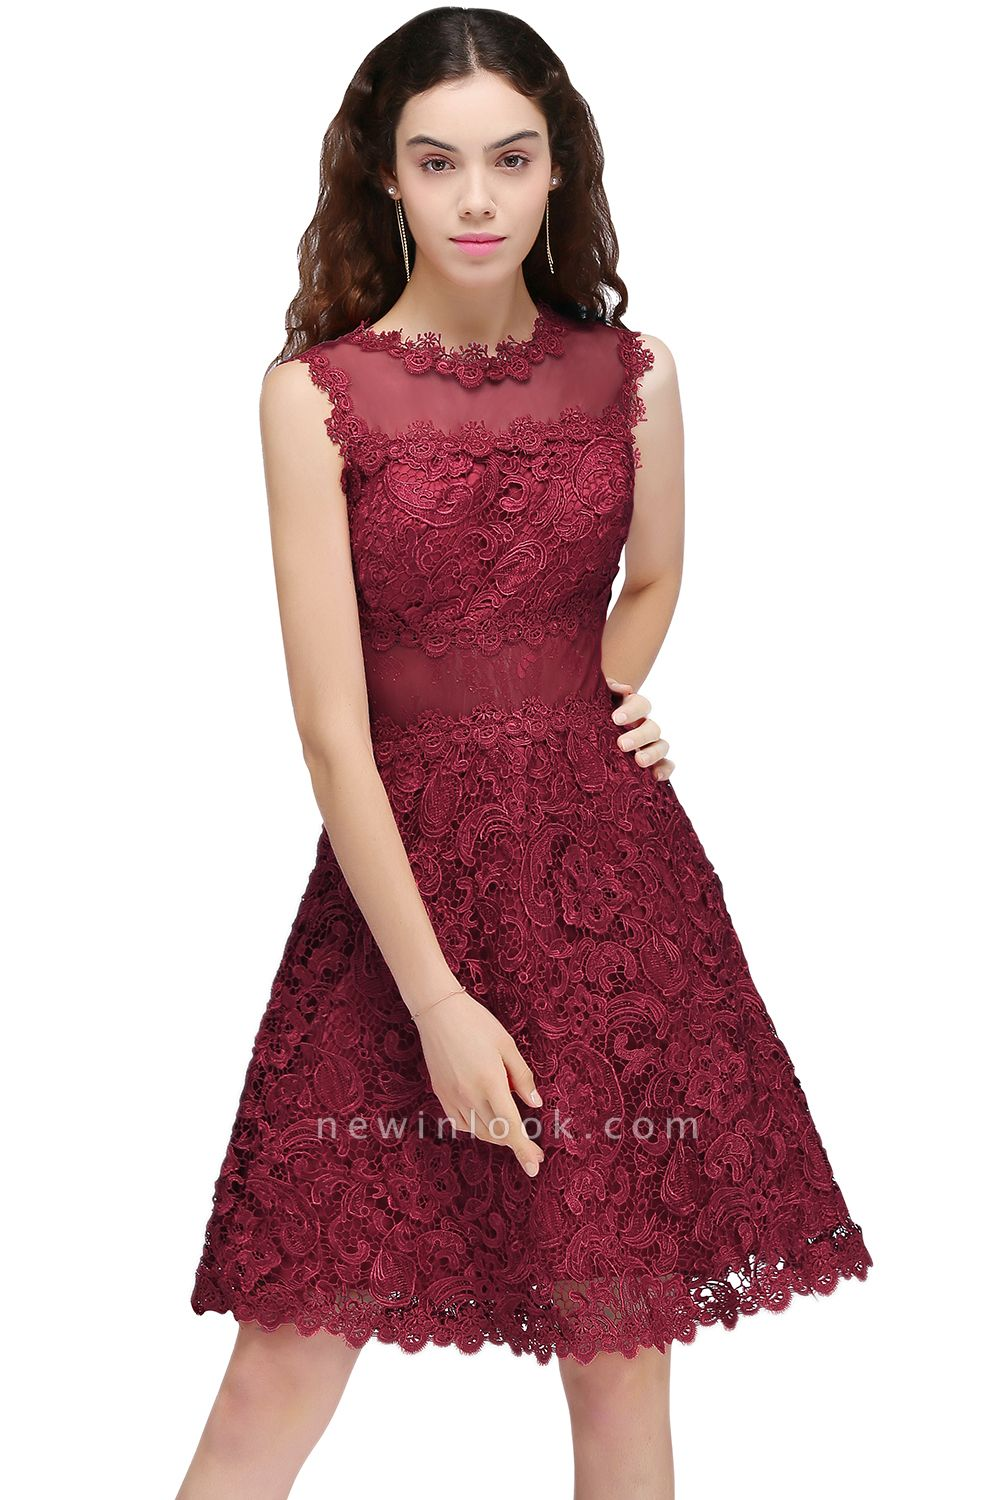 BRIA | Quinceanera Round Neck Short Burgundy Lace Dama Dresses